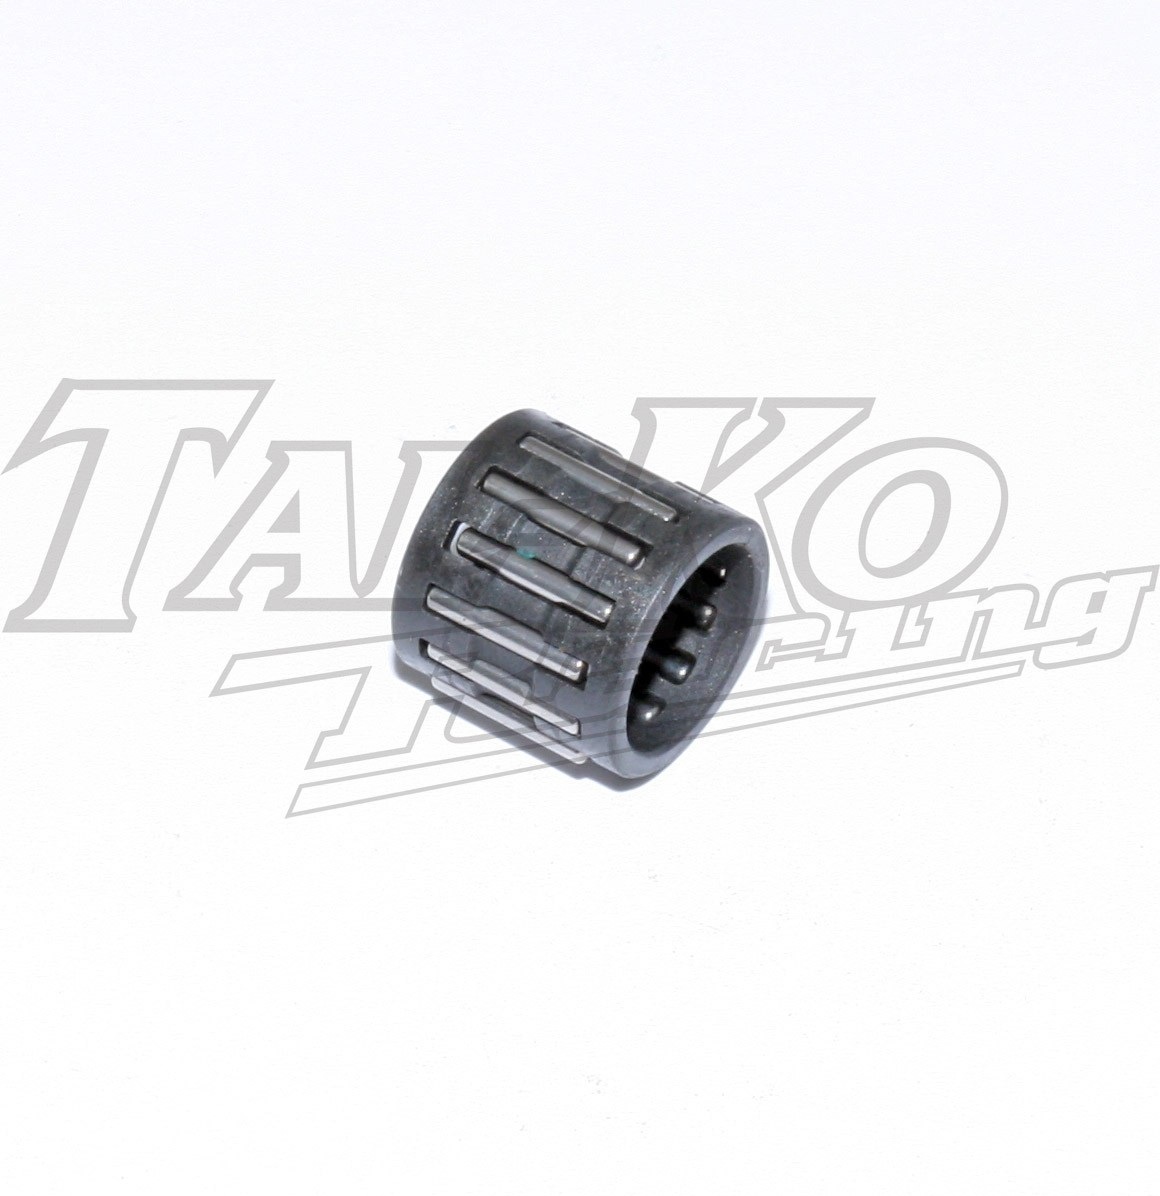 SMALL END CAGED ROLLER BEARING 14 x 18 x 16.7